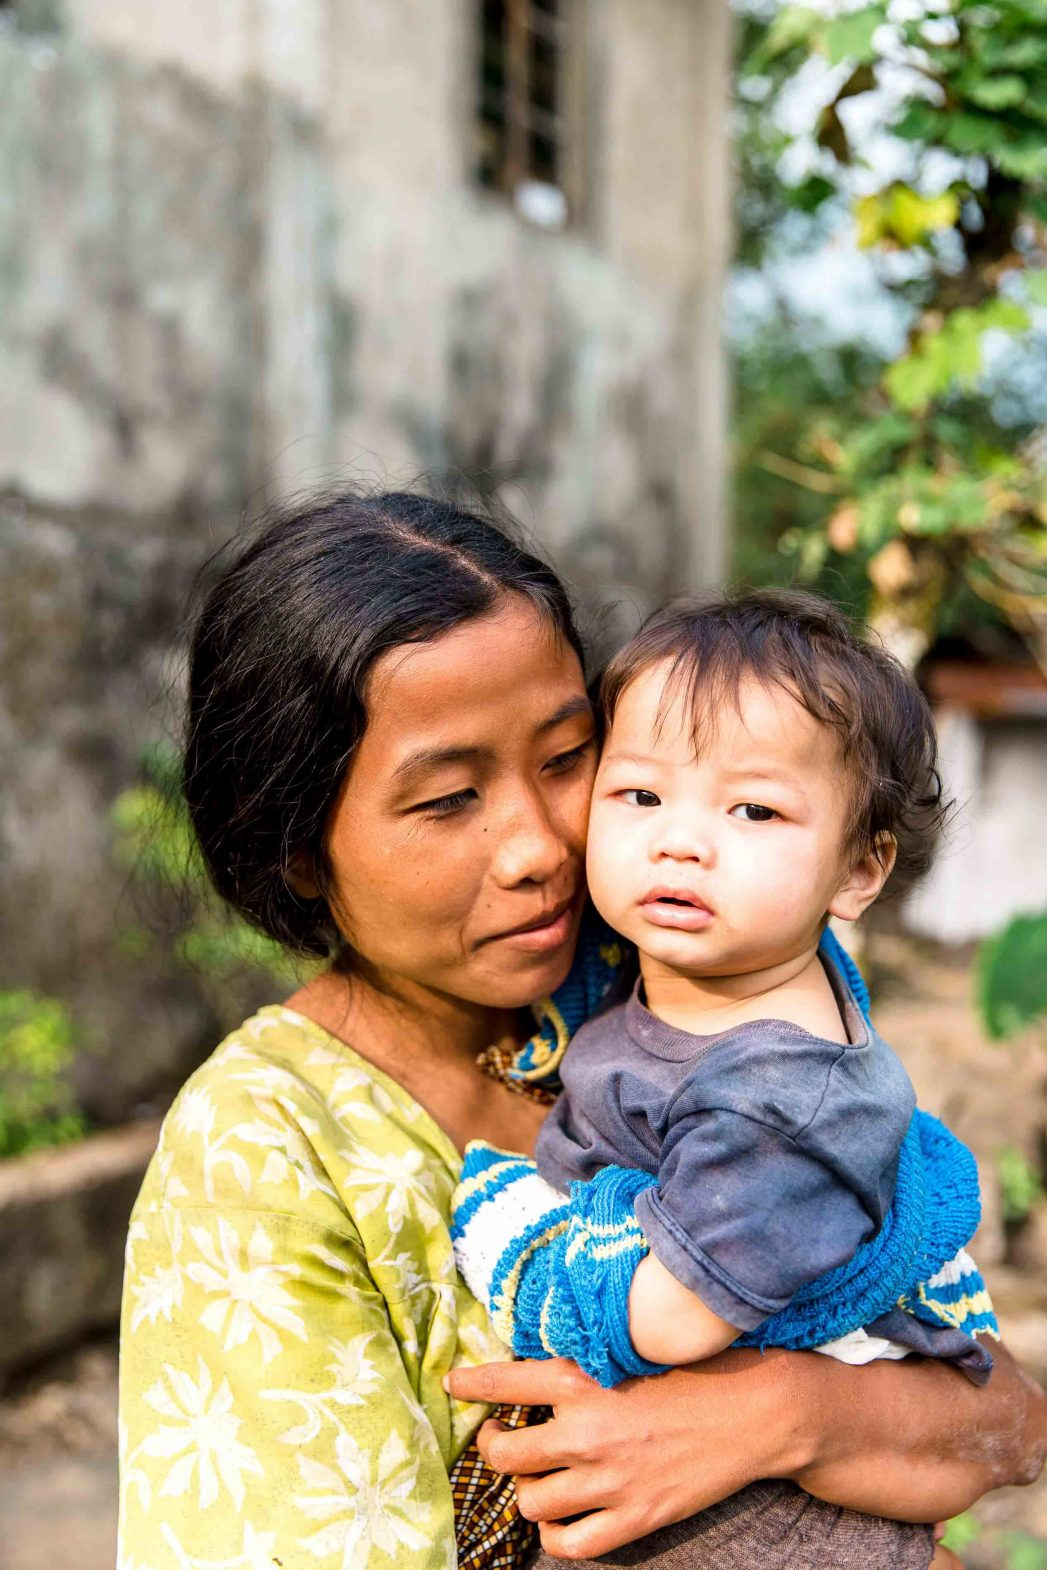 A Khasi woman and her young child in the village of Nongriat in Meghalaya, India.